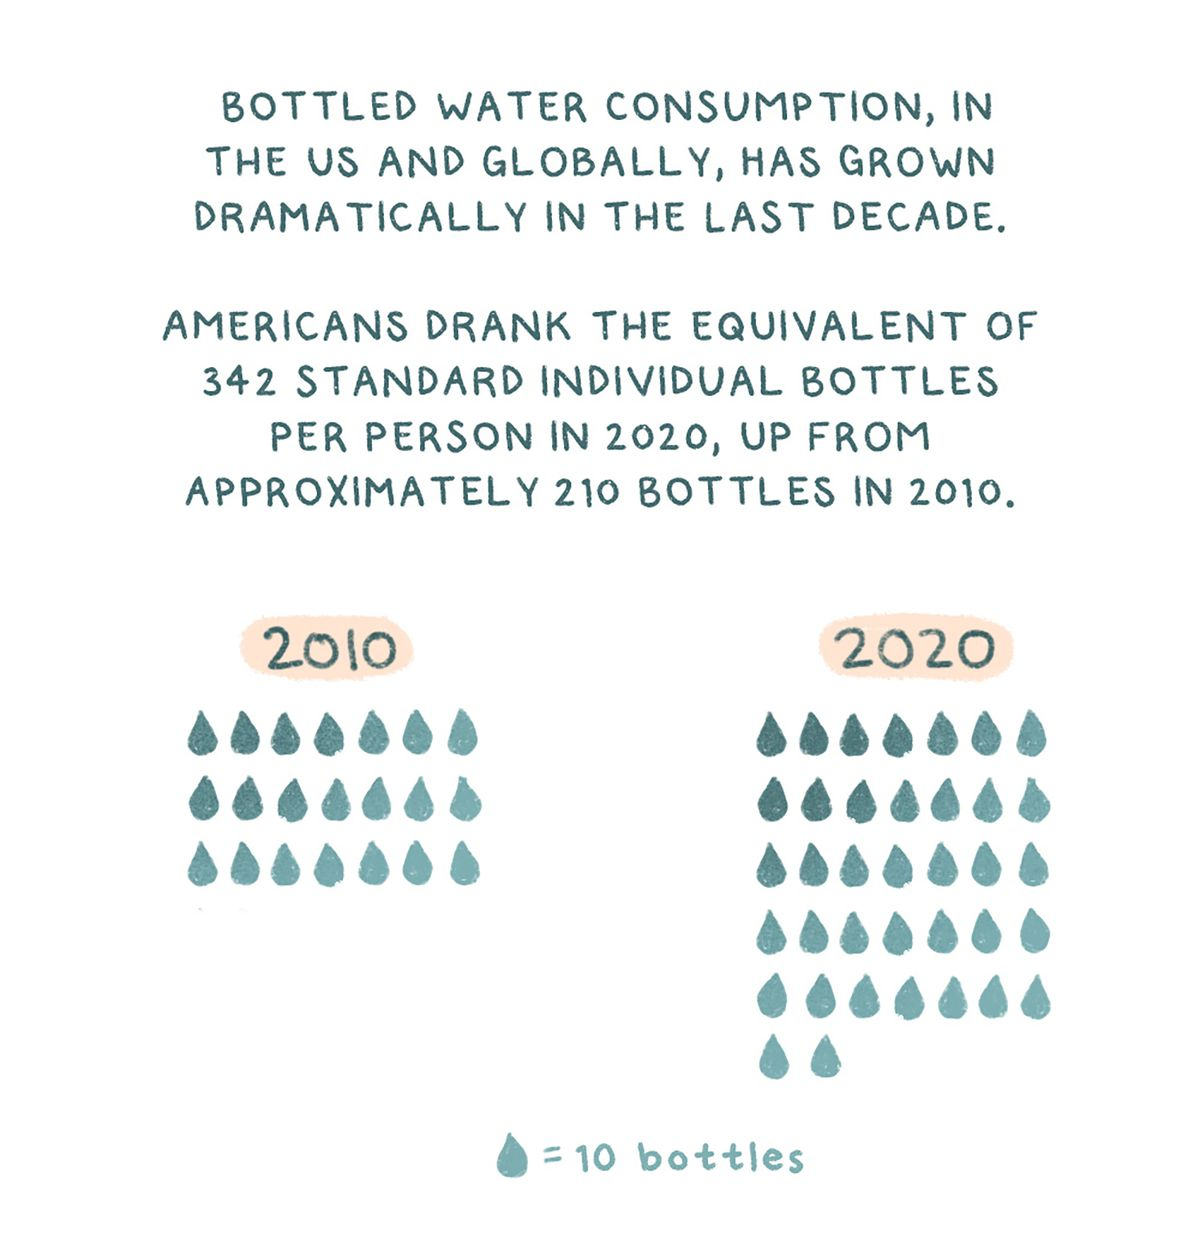 """Text: """"Bottled water consumption, in the US and globally, has grown dramatically in the last decade. Americans drank the equivalent of 342 standard individual bottles per person in 2020, up from approximately 210 bottles in 2010."""" with a drawing of charts that illustrate this, using water droplets to represent 10 bottles."""